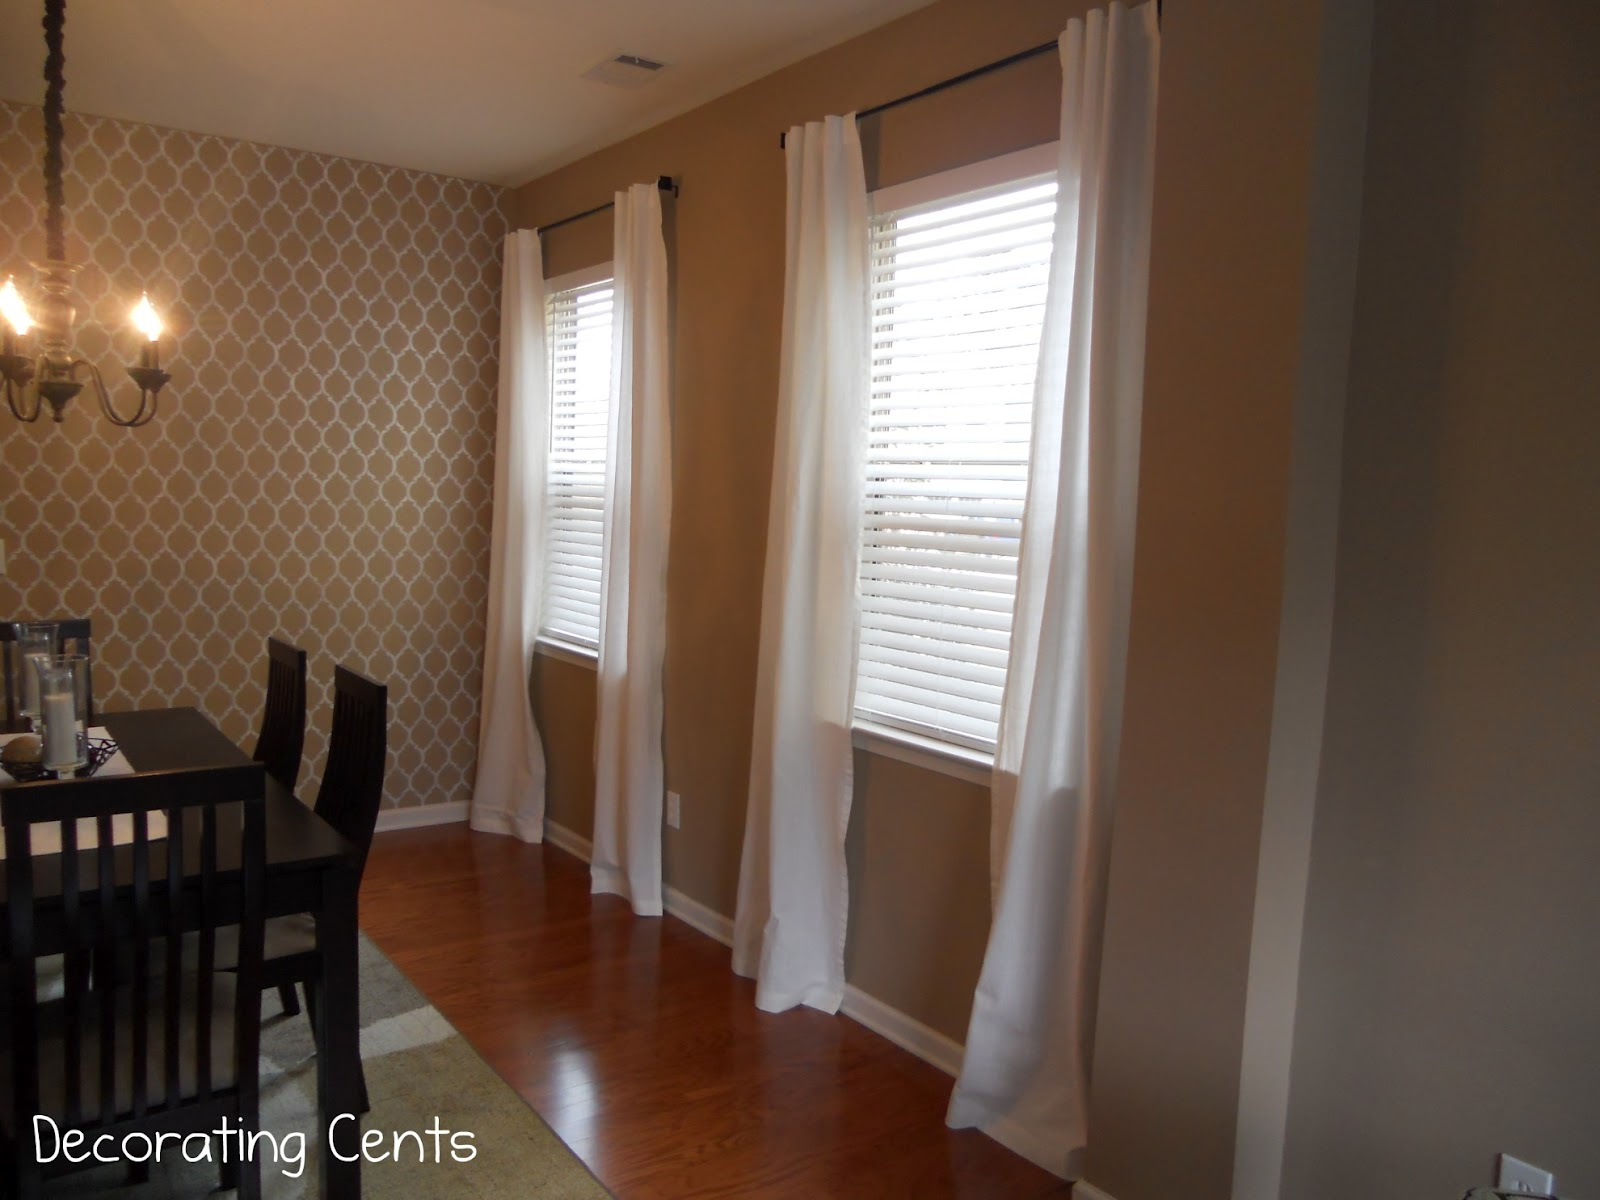 Curtain designs for dining rooms - Decorating Cents Dining Room Curtains